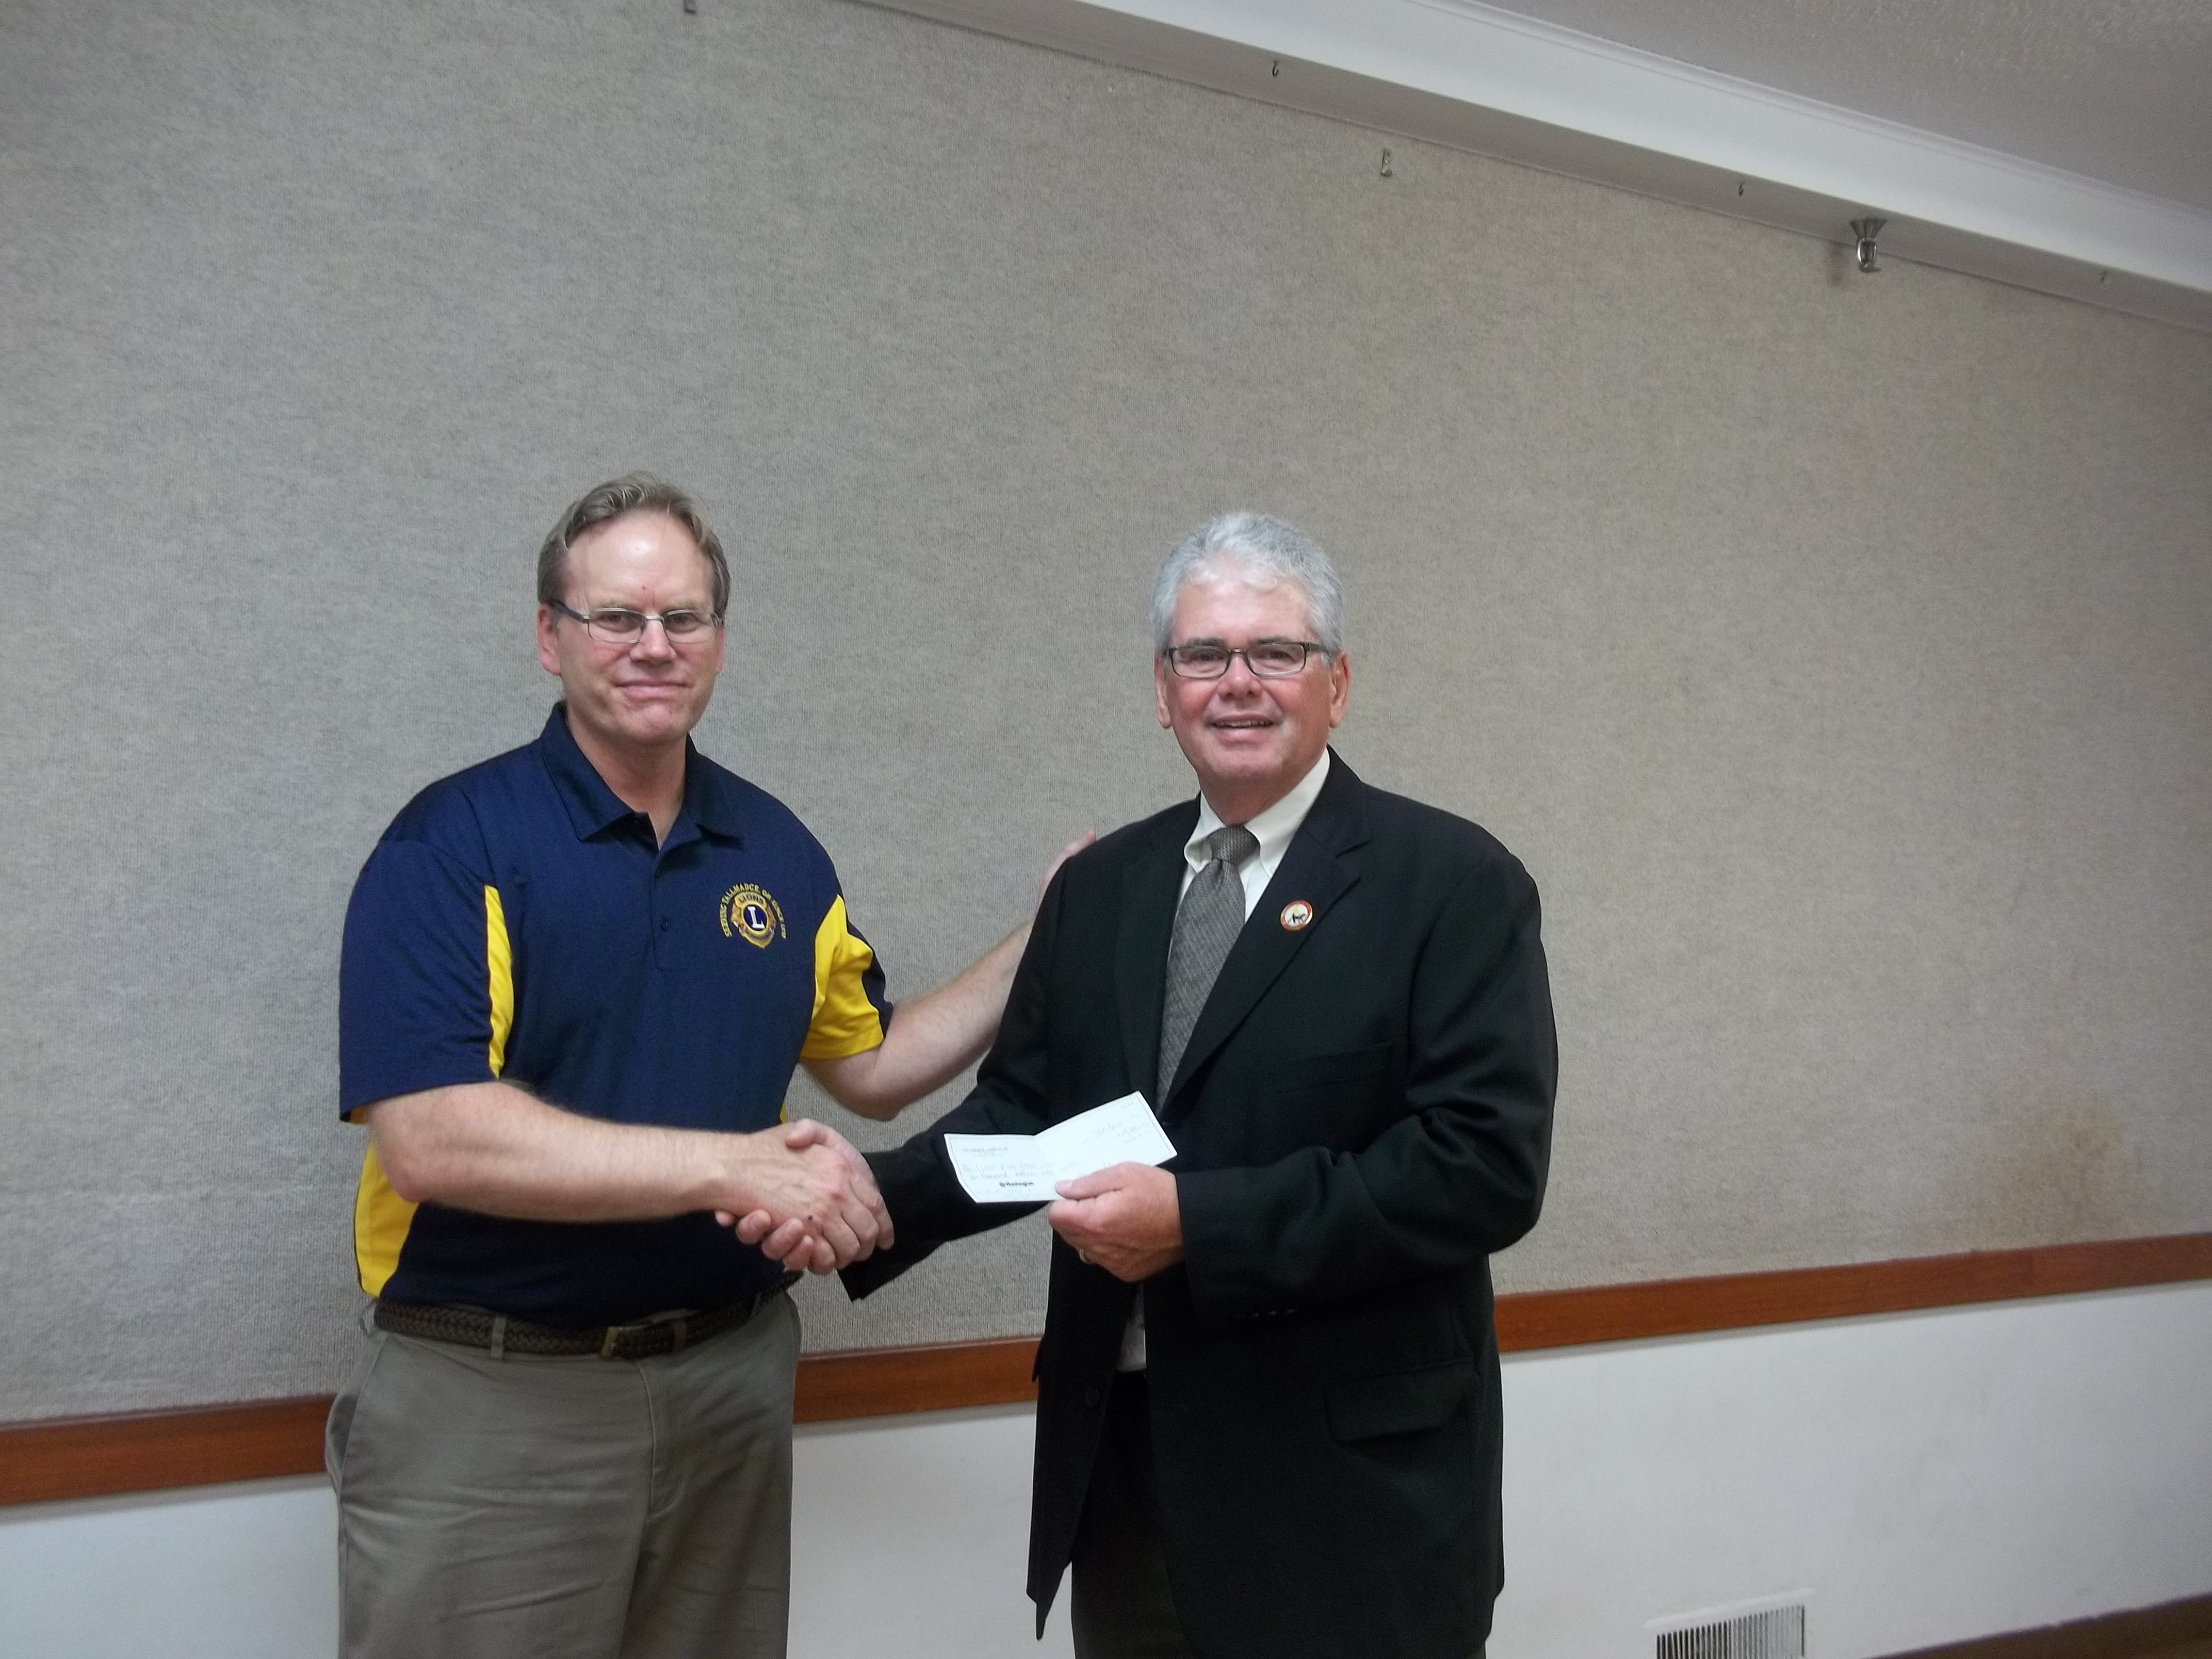 Lion Dan Plazo presents check to PDG Lion Jay Gray, Executive Director of Lions Pilot Dogs of Columbus OH.